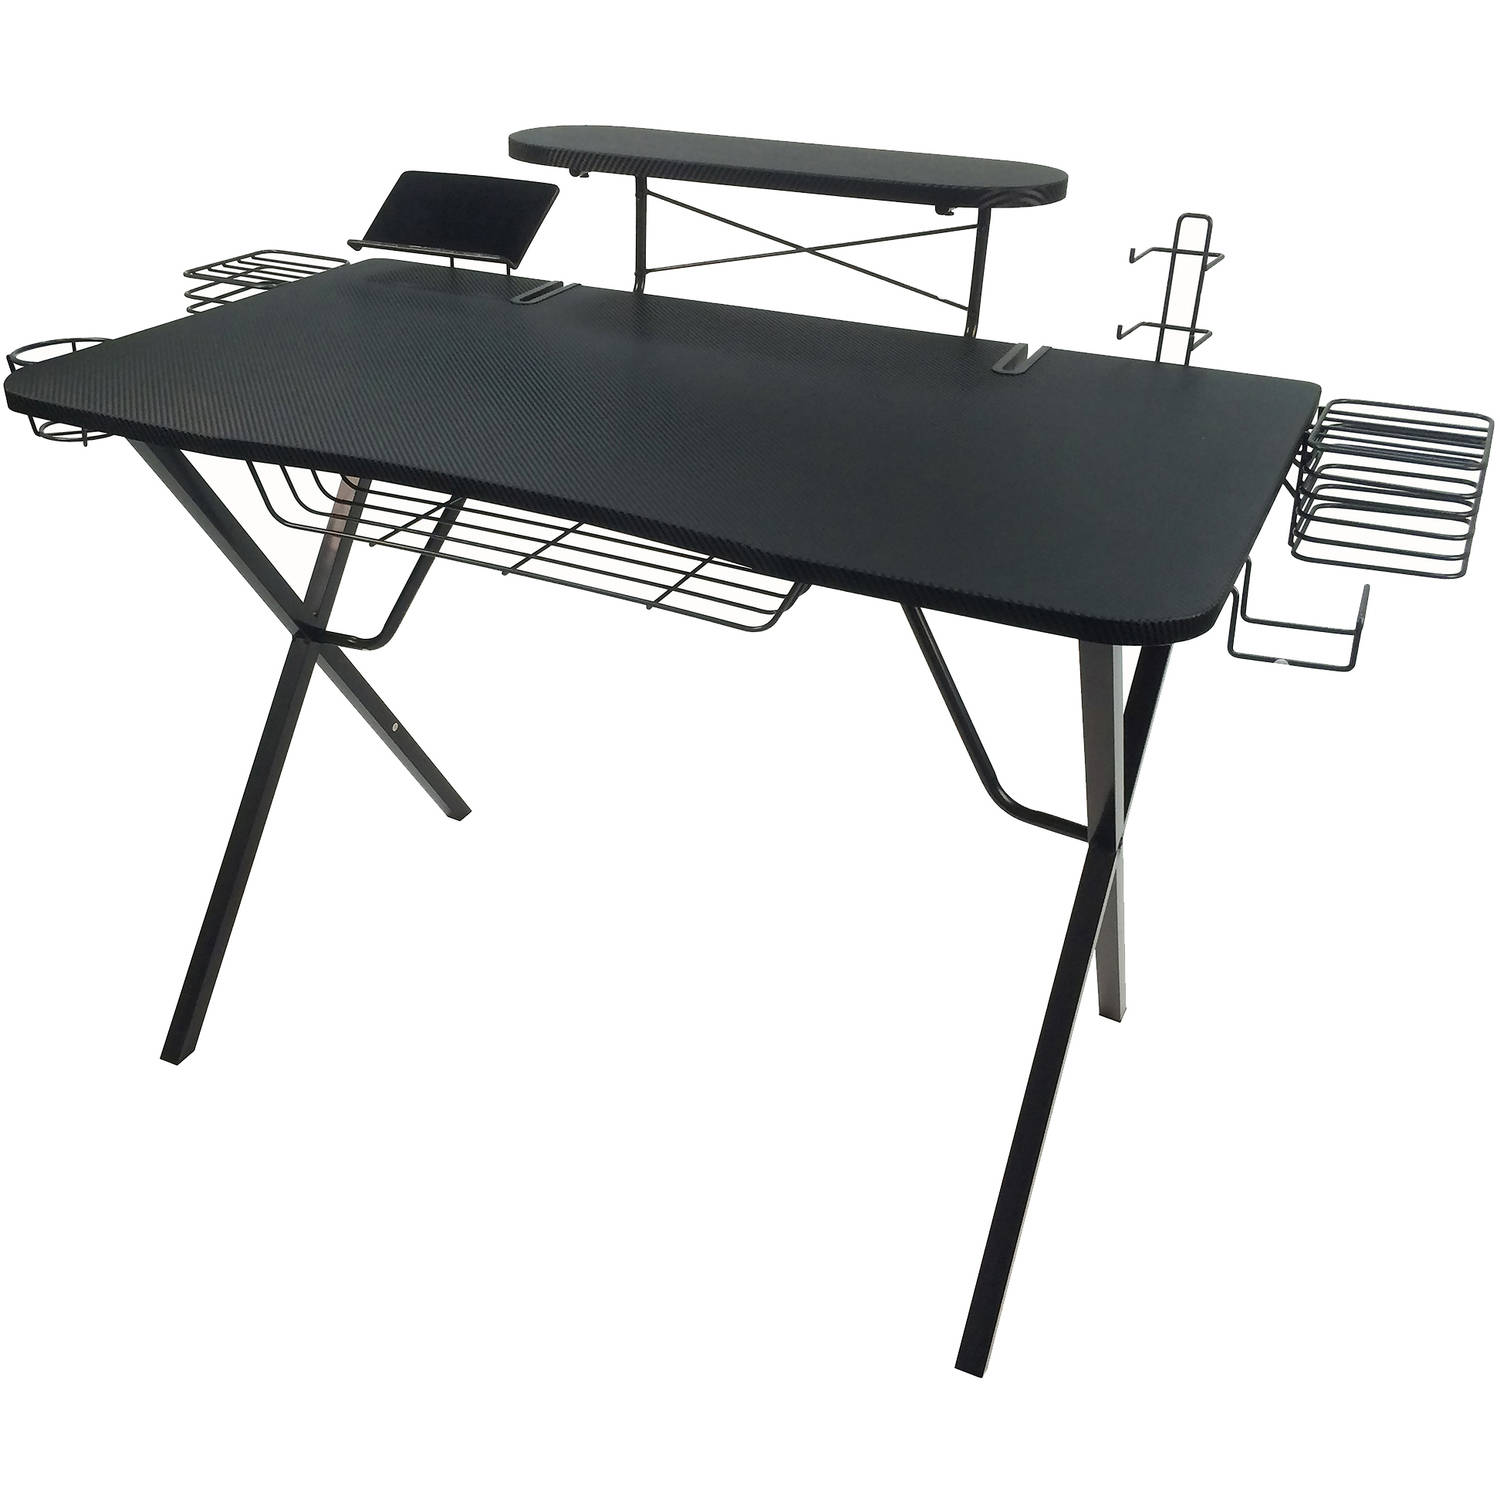 Prime Atlantic Professional Gaming Desk Pro With Built In Storage Metal Accessory Holders And Cable Slots Download Free Architecture Designs Grimeyleaguecom